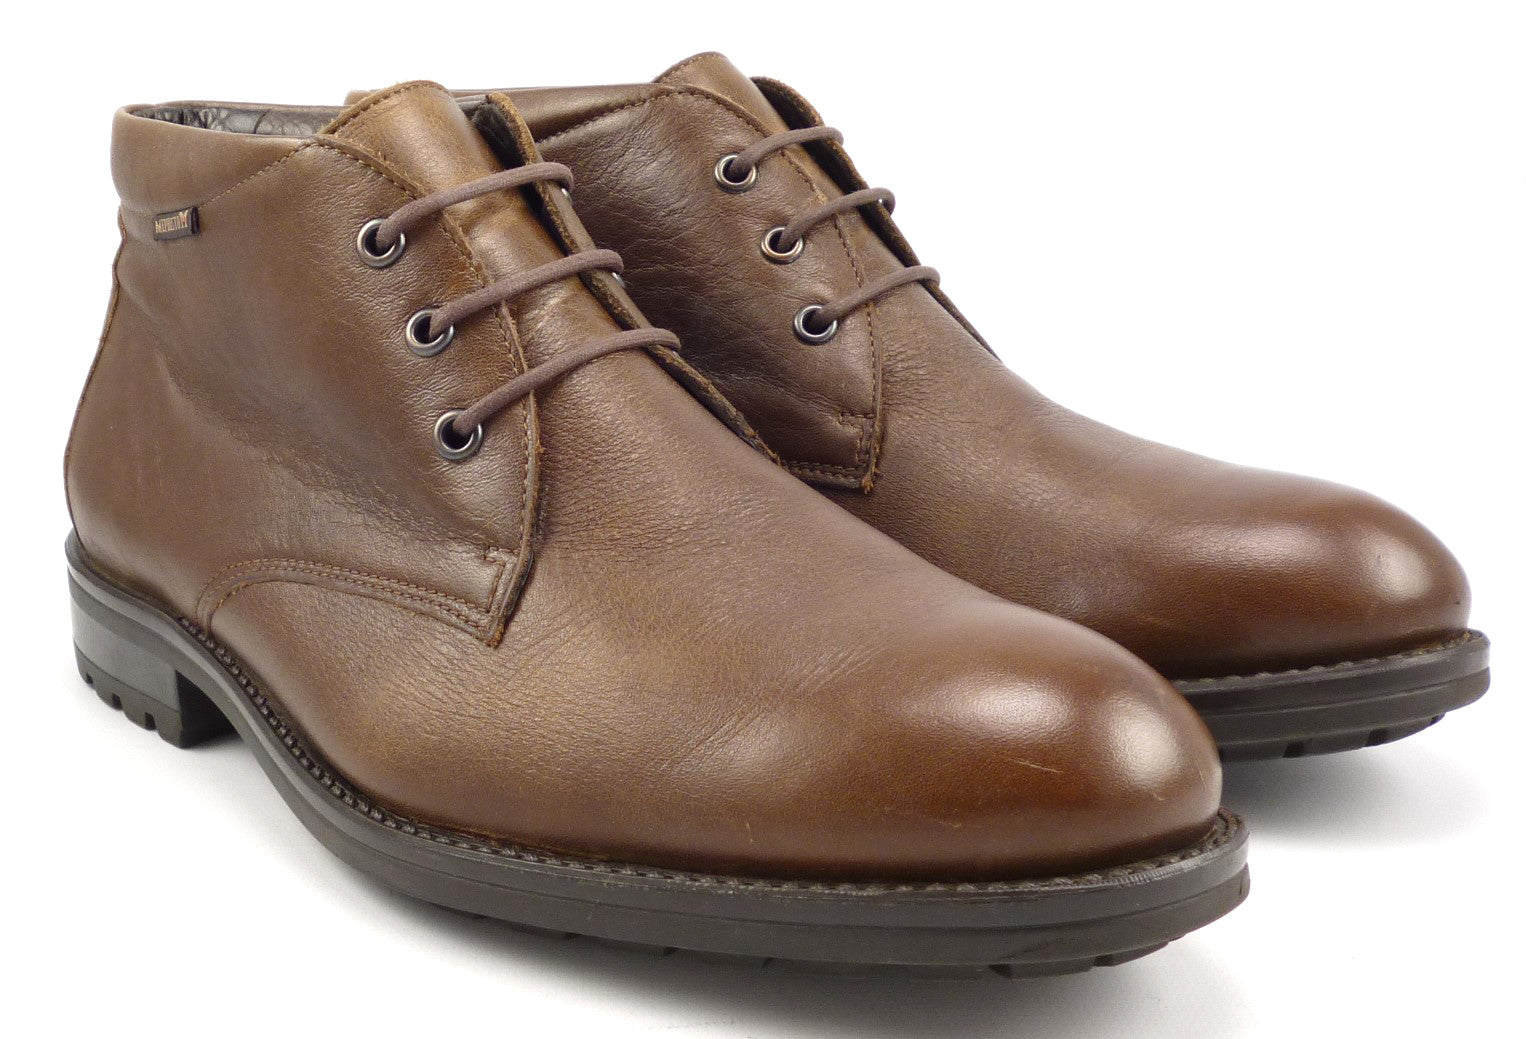 41c0cb0f4c9b Mephisto Men s Shoes 8 Isacio Leather Ankle Boots Brown ...